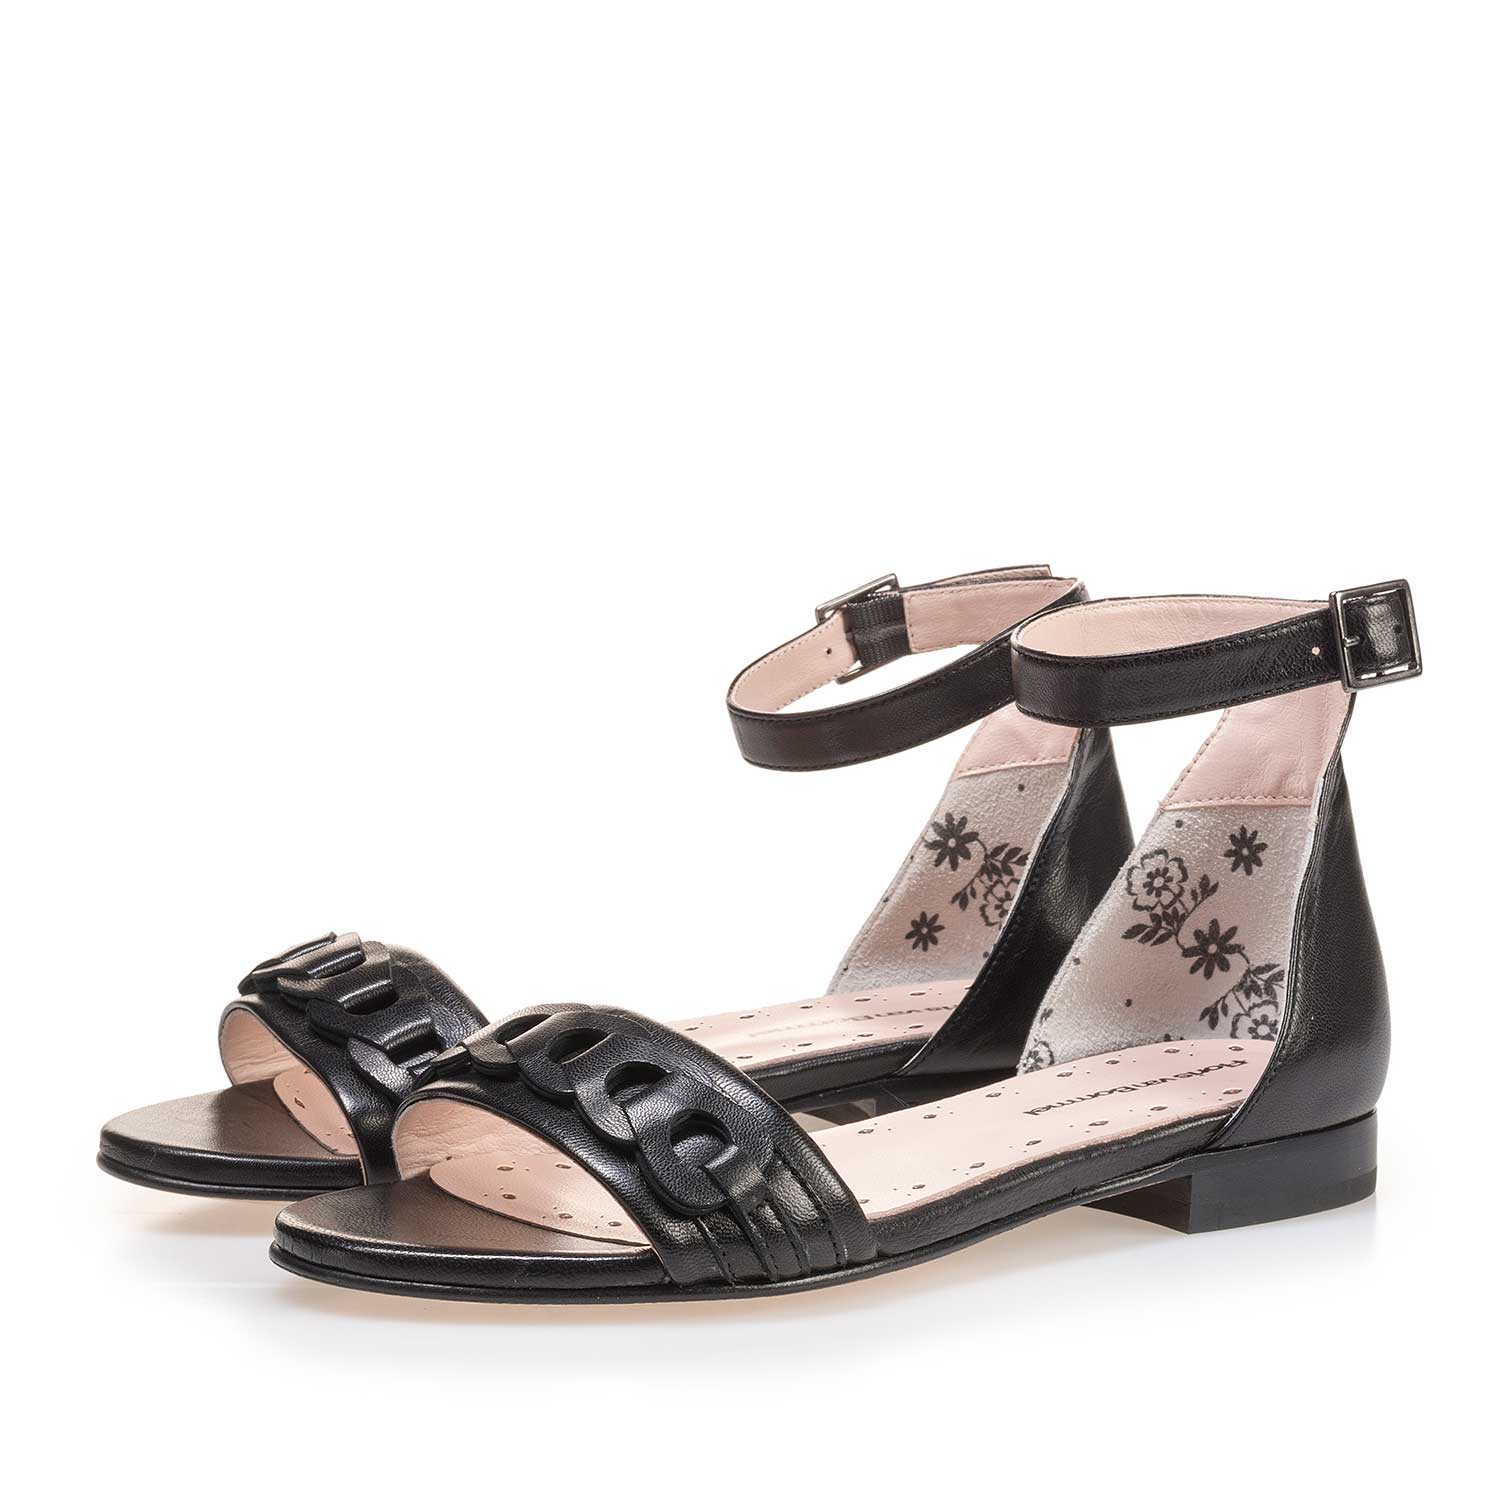 85224/00 - Black leather buckle closure sandal